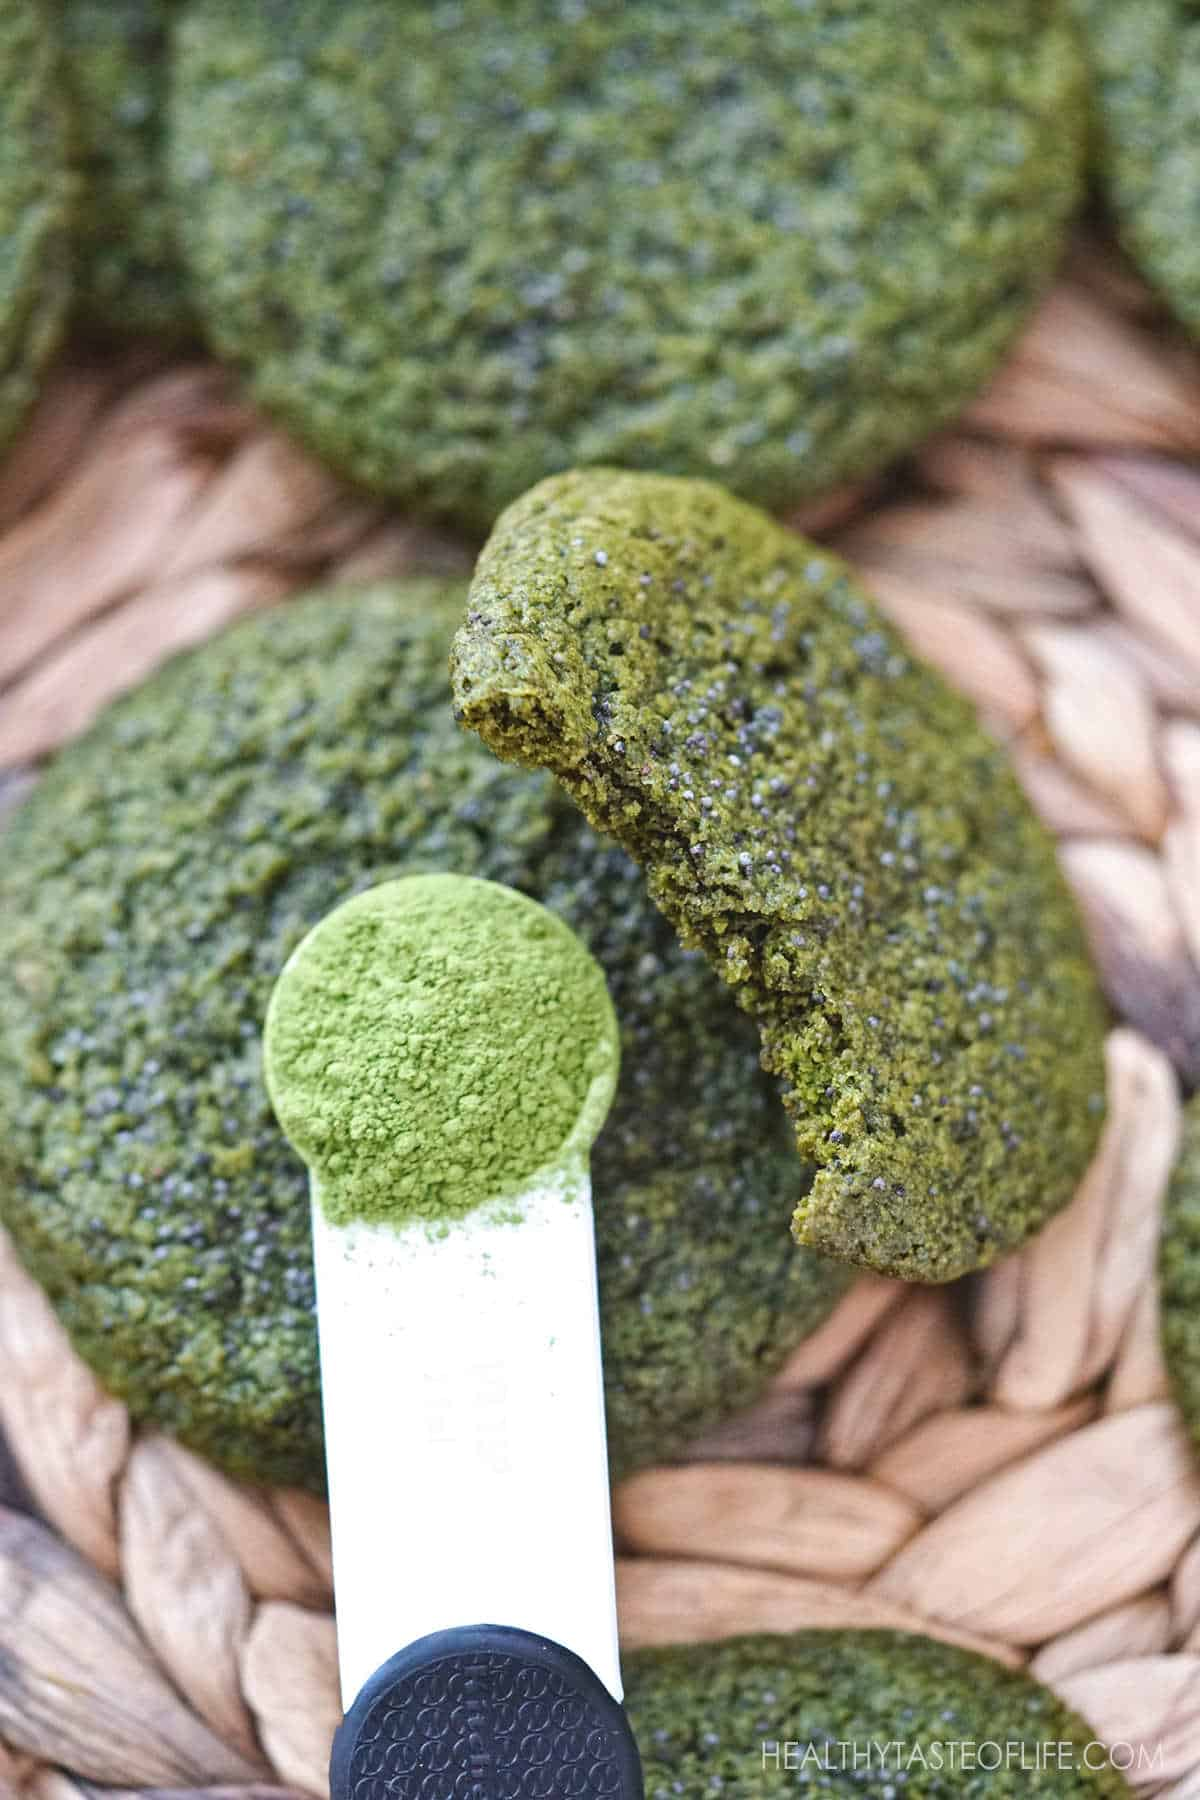 Choose the best matcha powder for making healthy matcha cookies. These vegan matcha cookies are made with ceremonial grade matcha, flax seeds,  gluten free oatmeal, vegan butter and maple sugar: soft and chewy inside and crisp on the outside. #matcha #cookies #healthy #glutenfree #oatmeal #vegan